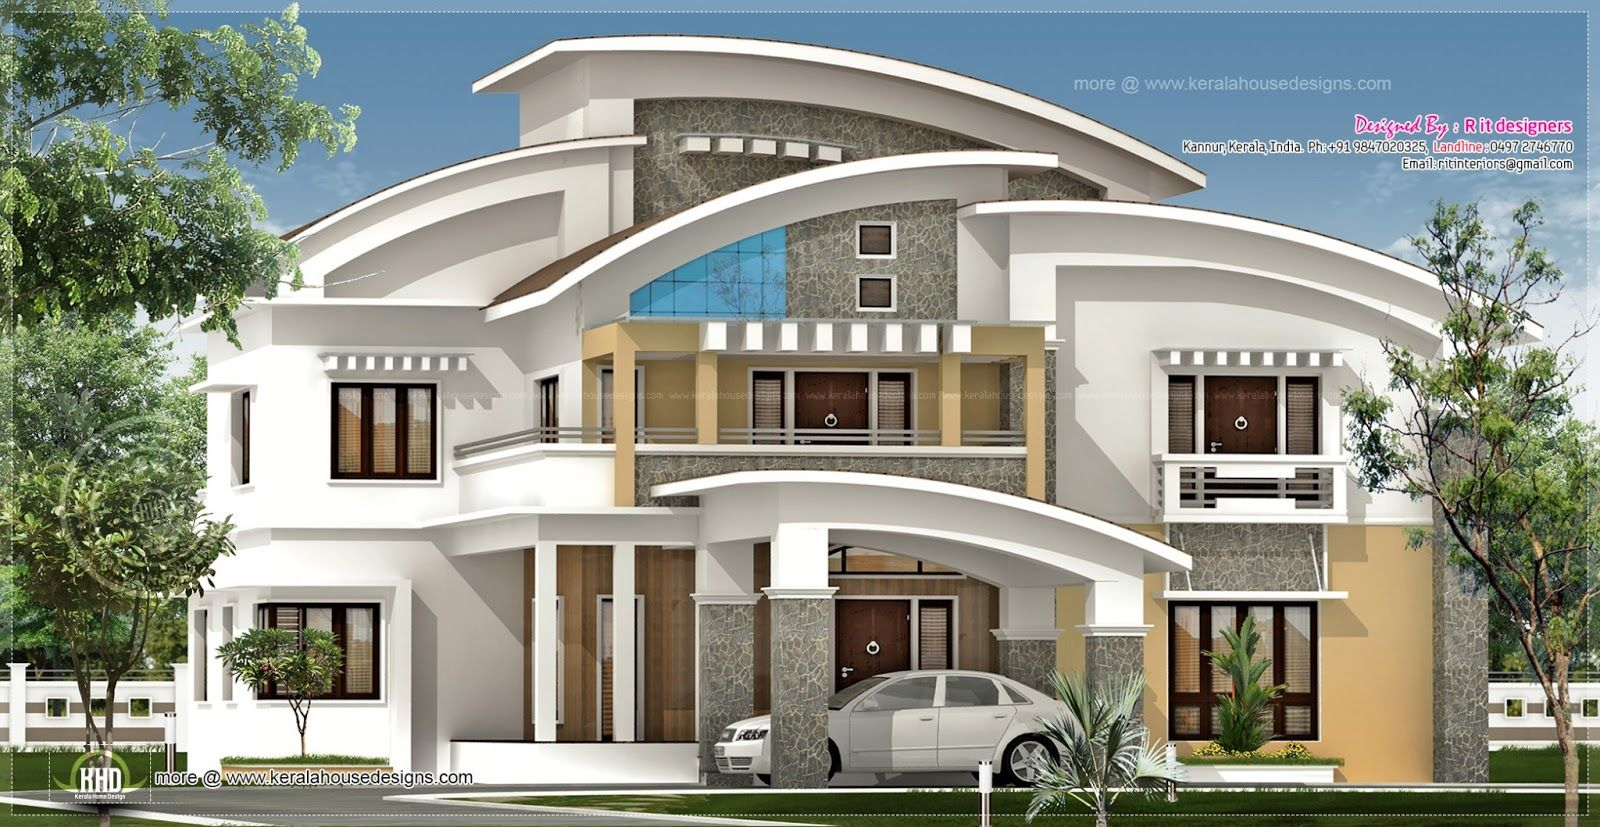 Awesome luxury homes plans 8 french country luxury home House design